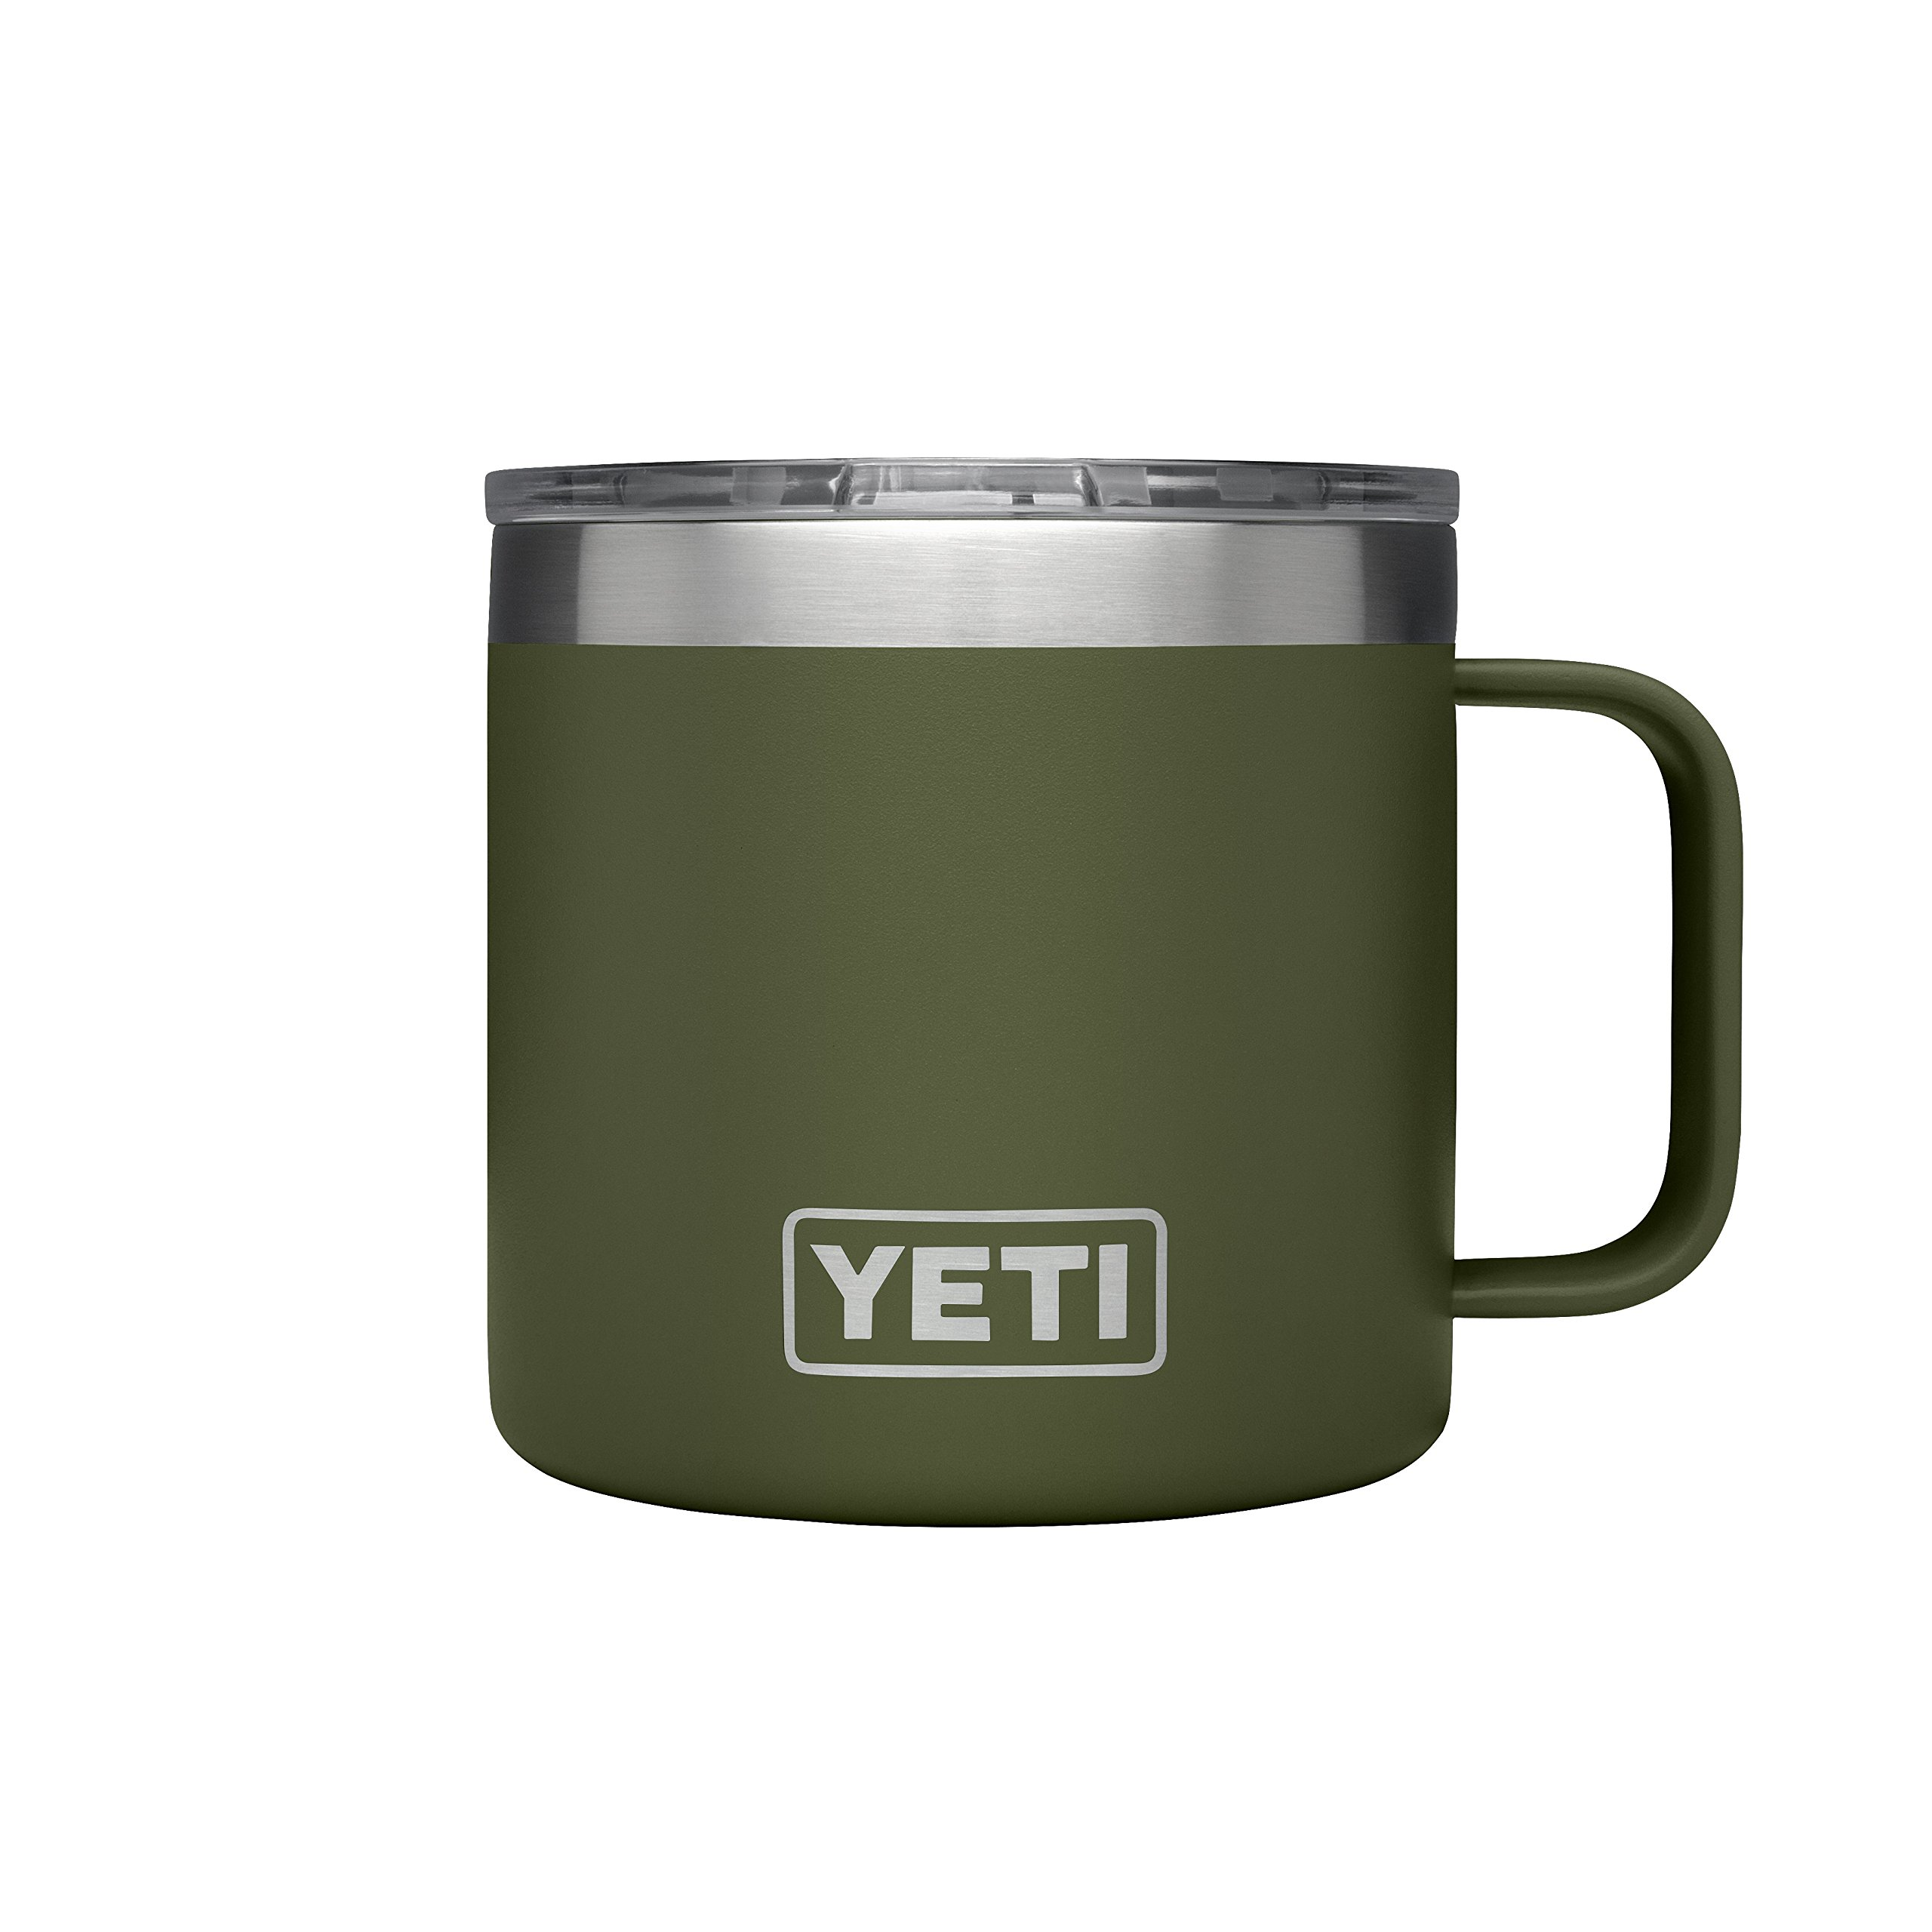 YETI Rambler 14 oz Stainless Steel Vacuum Insulated Mug with Lid, Olive Green